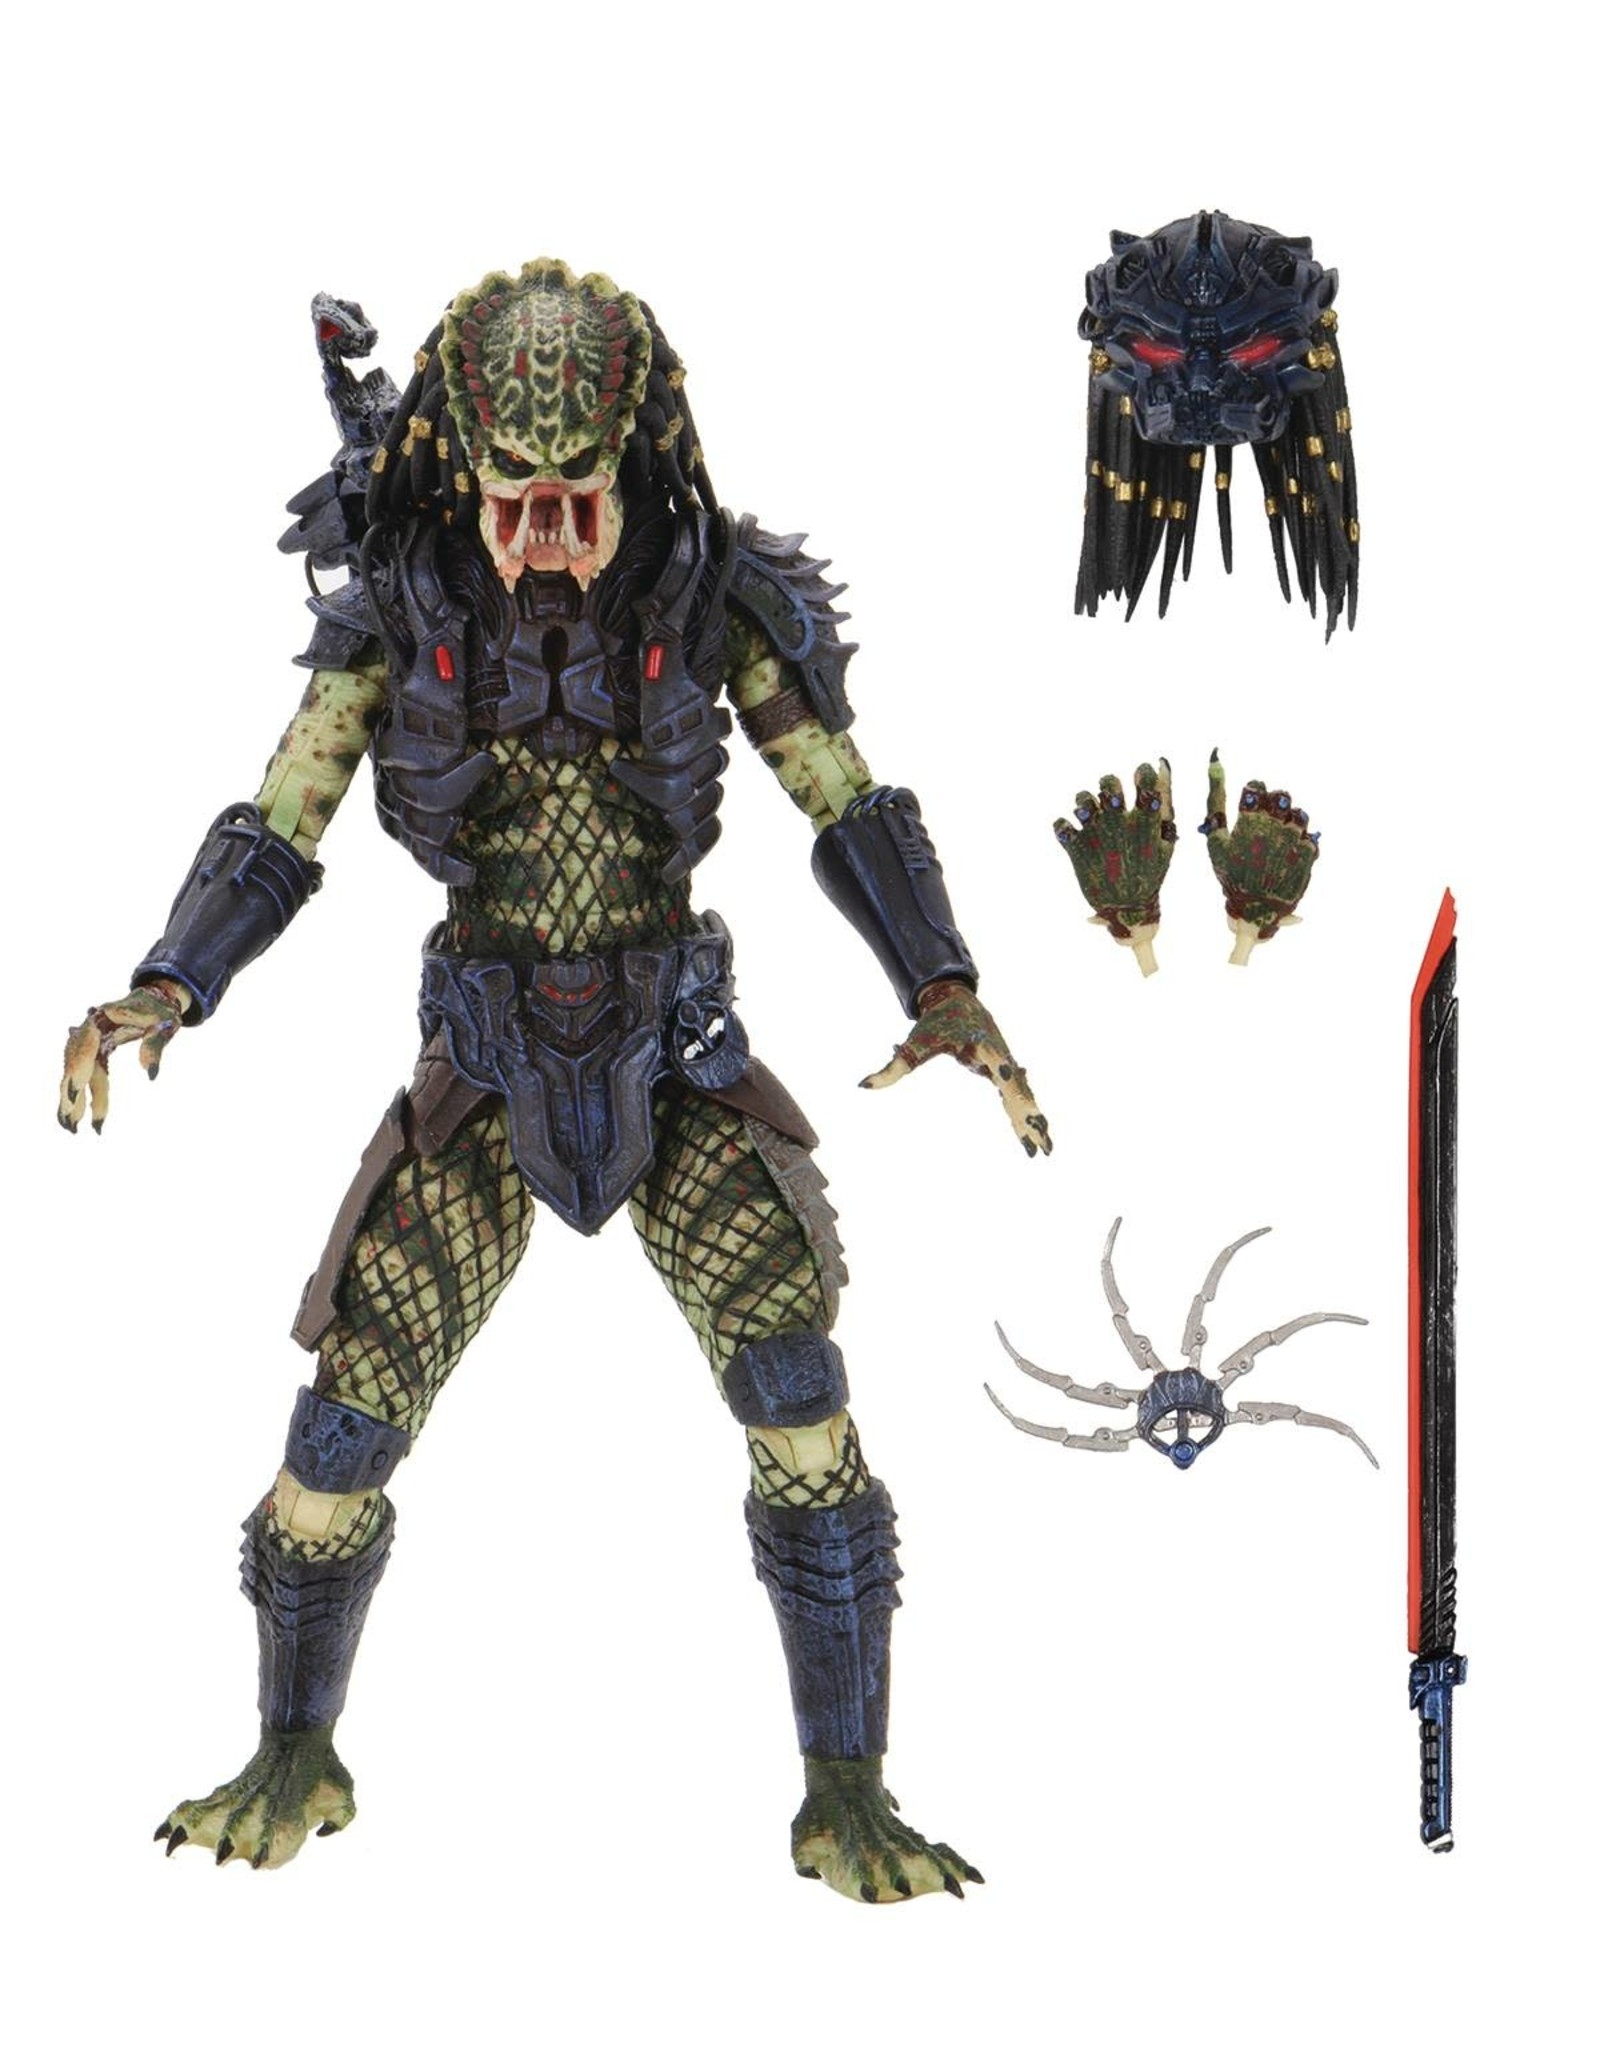 NECA PREDATOR 2 ULTIMATE LOST PREDATOR 7IN AF (C: 1-1-2)